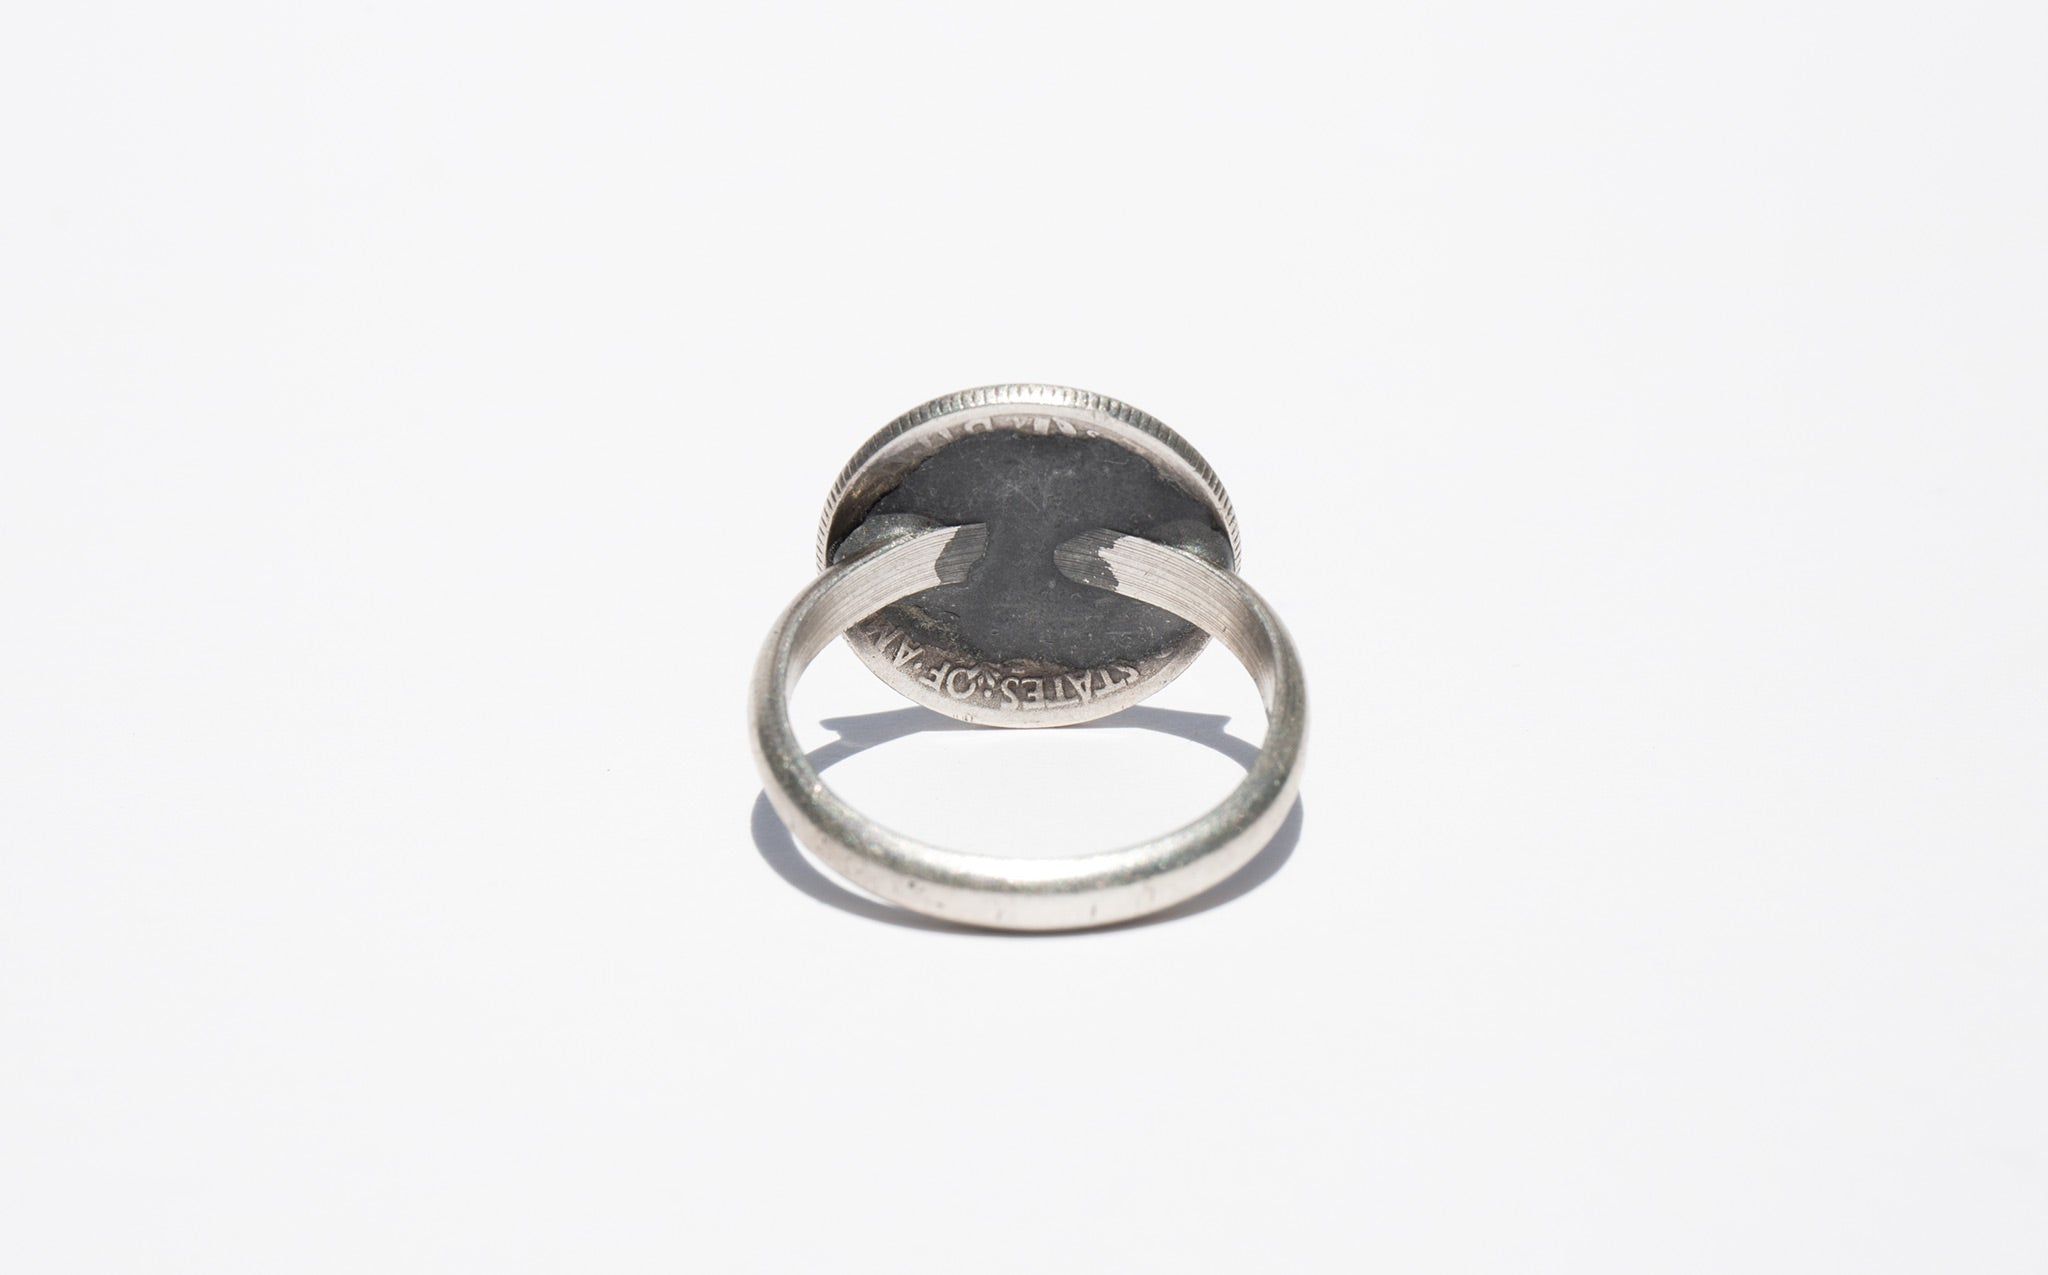 Winged Liberty Head Ring